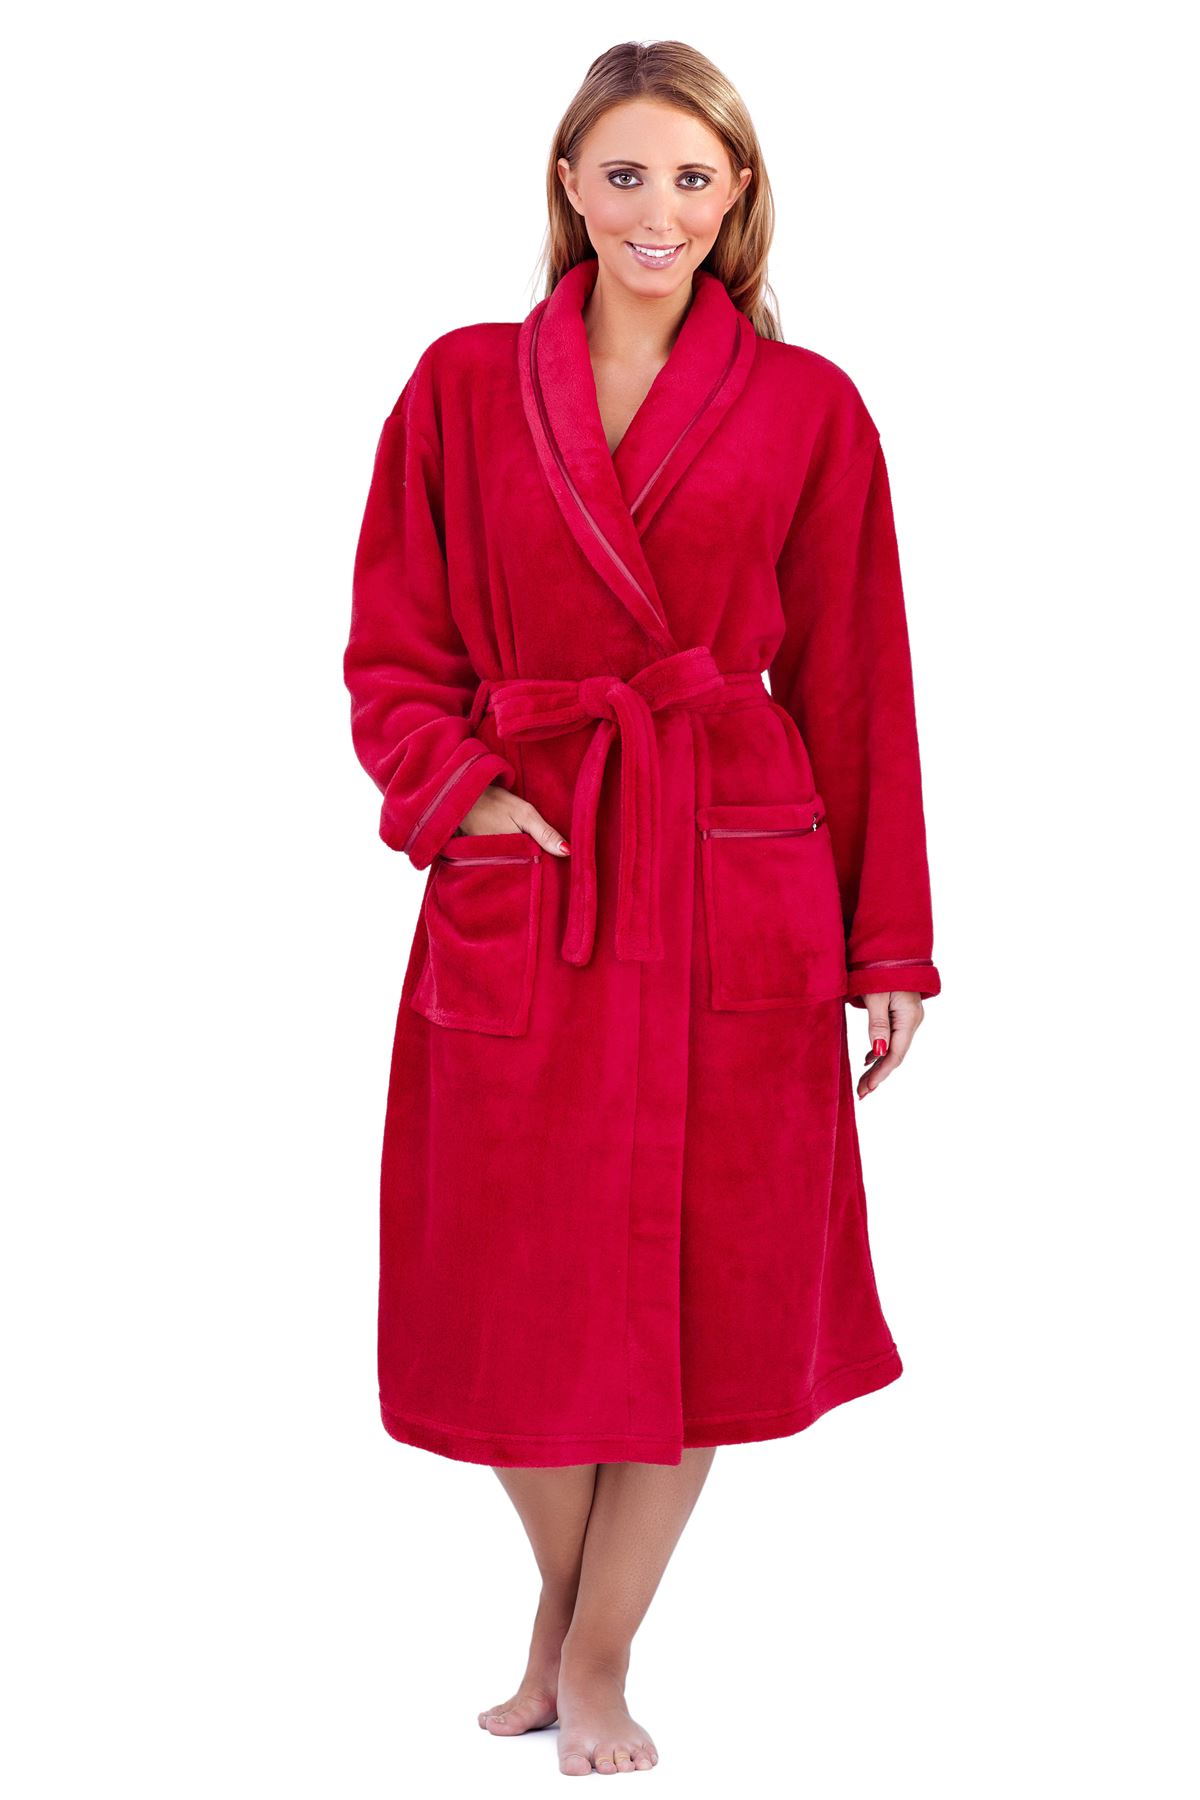 Ladies womens luxury soft plain fleece towelling bath robe for Luxury women